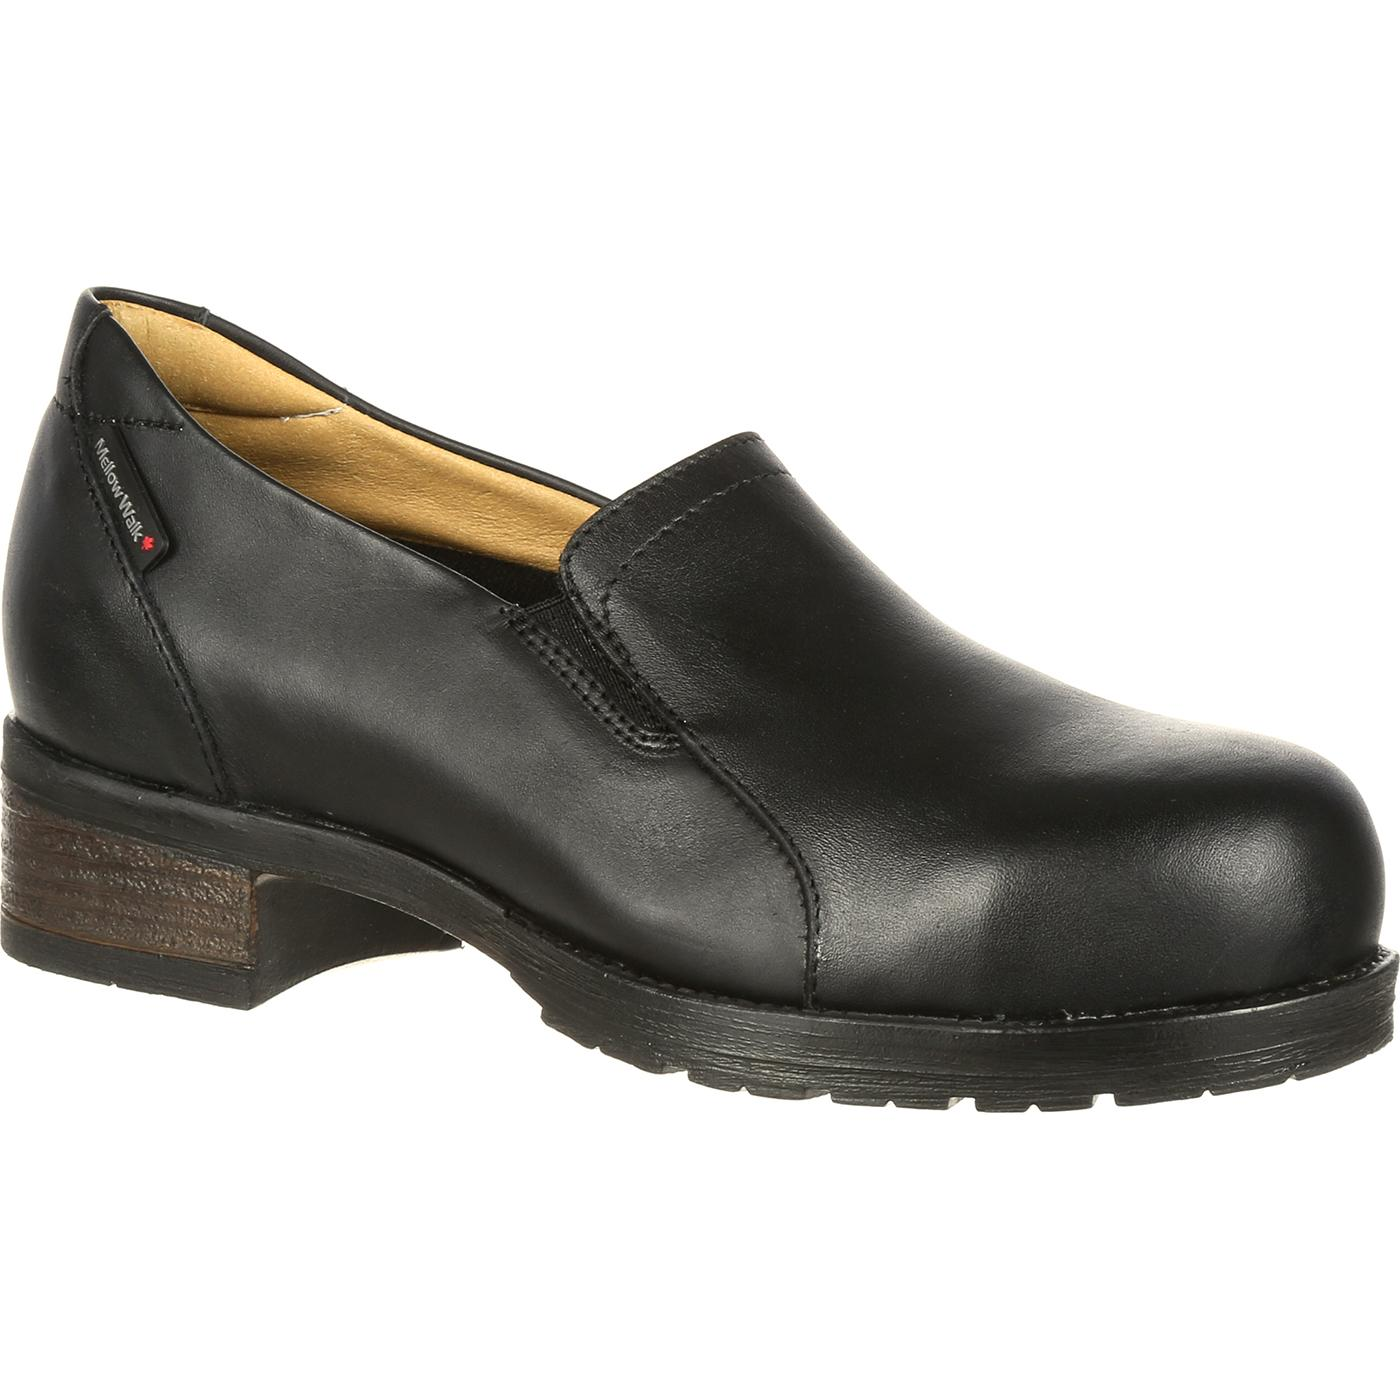 6f07a2d2ef2 Mellow Walk Vanessa Women's Steel Toe CSA-Approved Puncture-Resistant  Slip-On Work Shoe